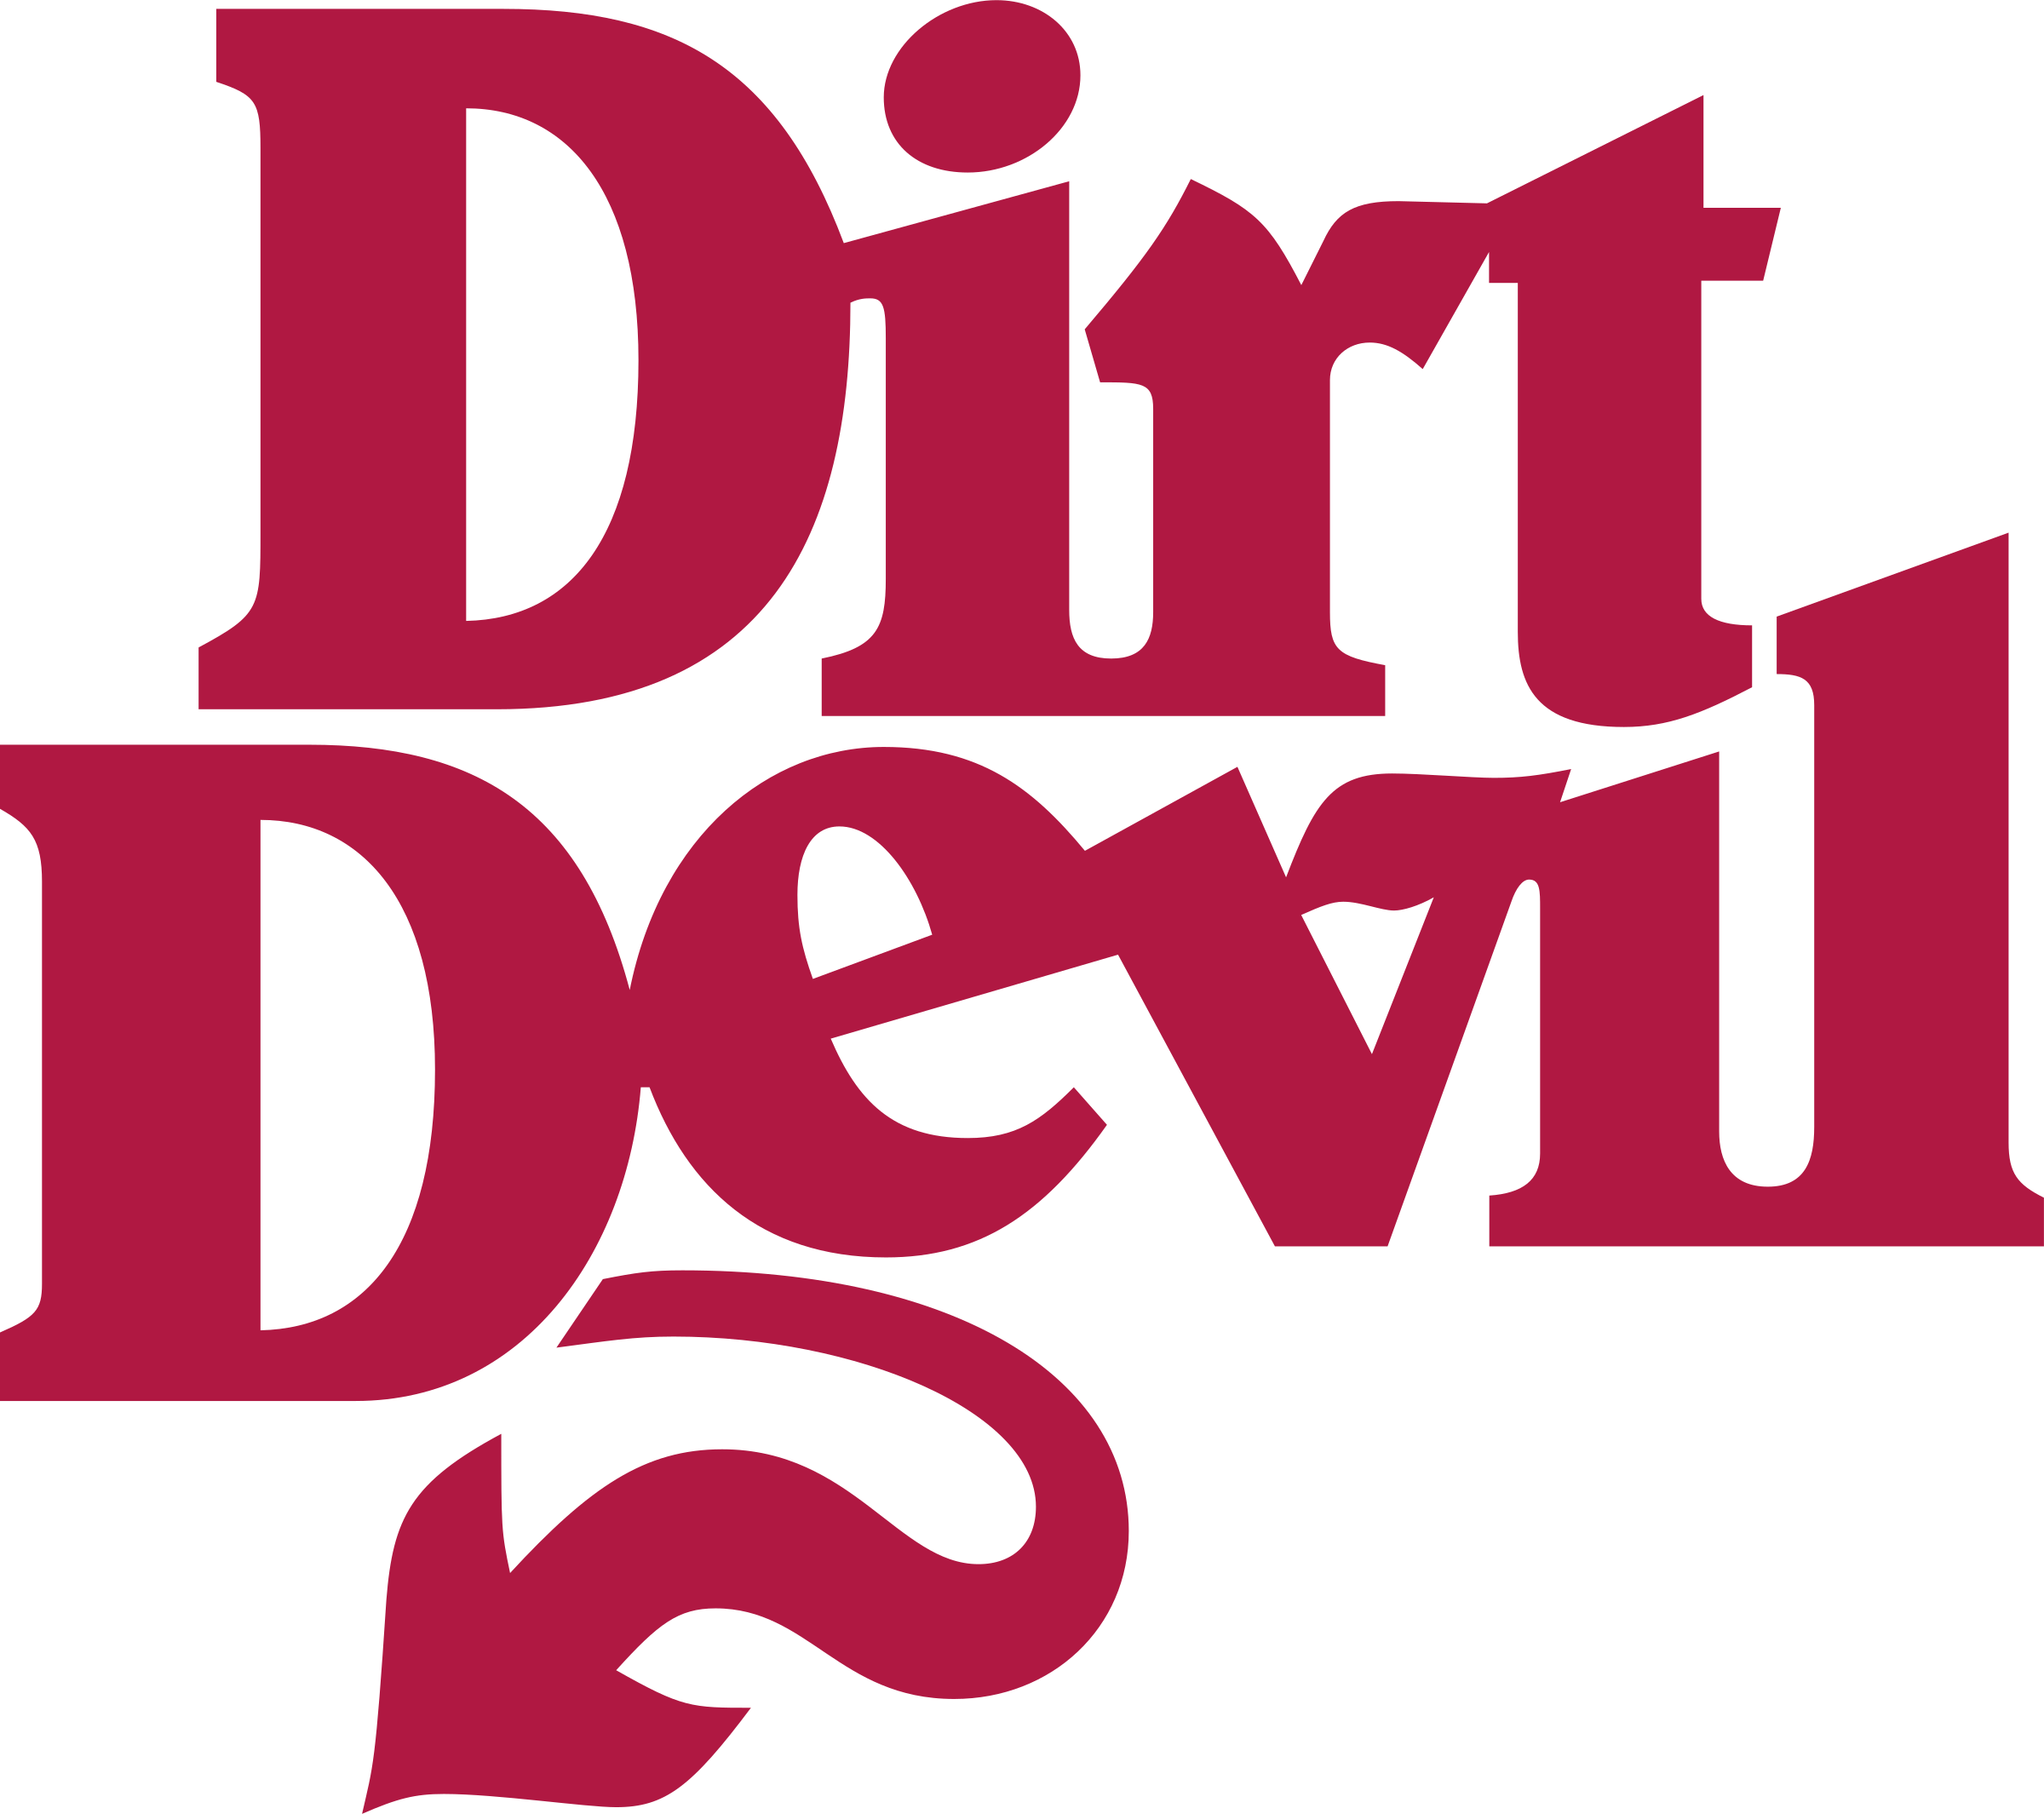 graphic royalty free Dirt logo png transparent. Devil vector